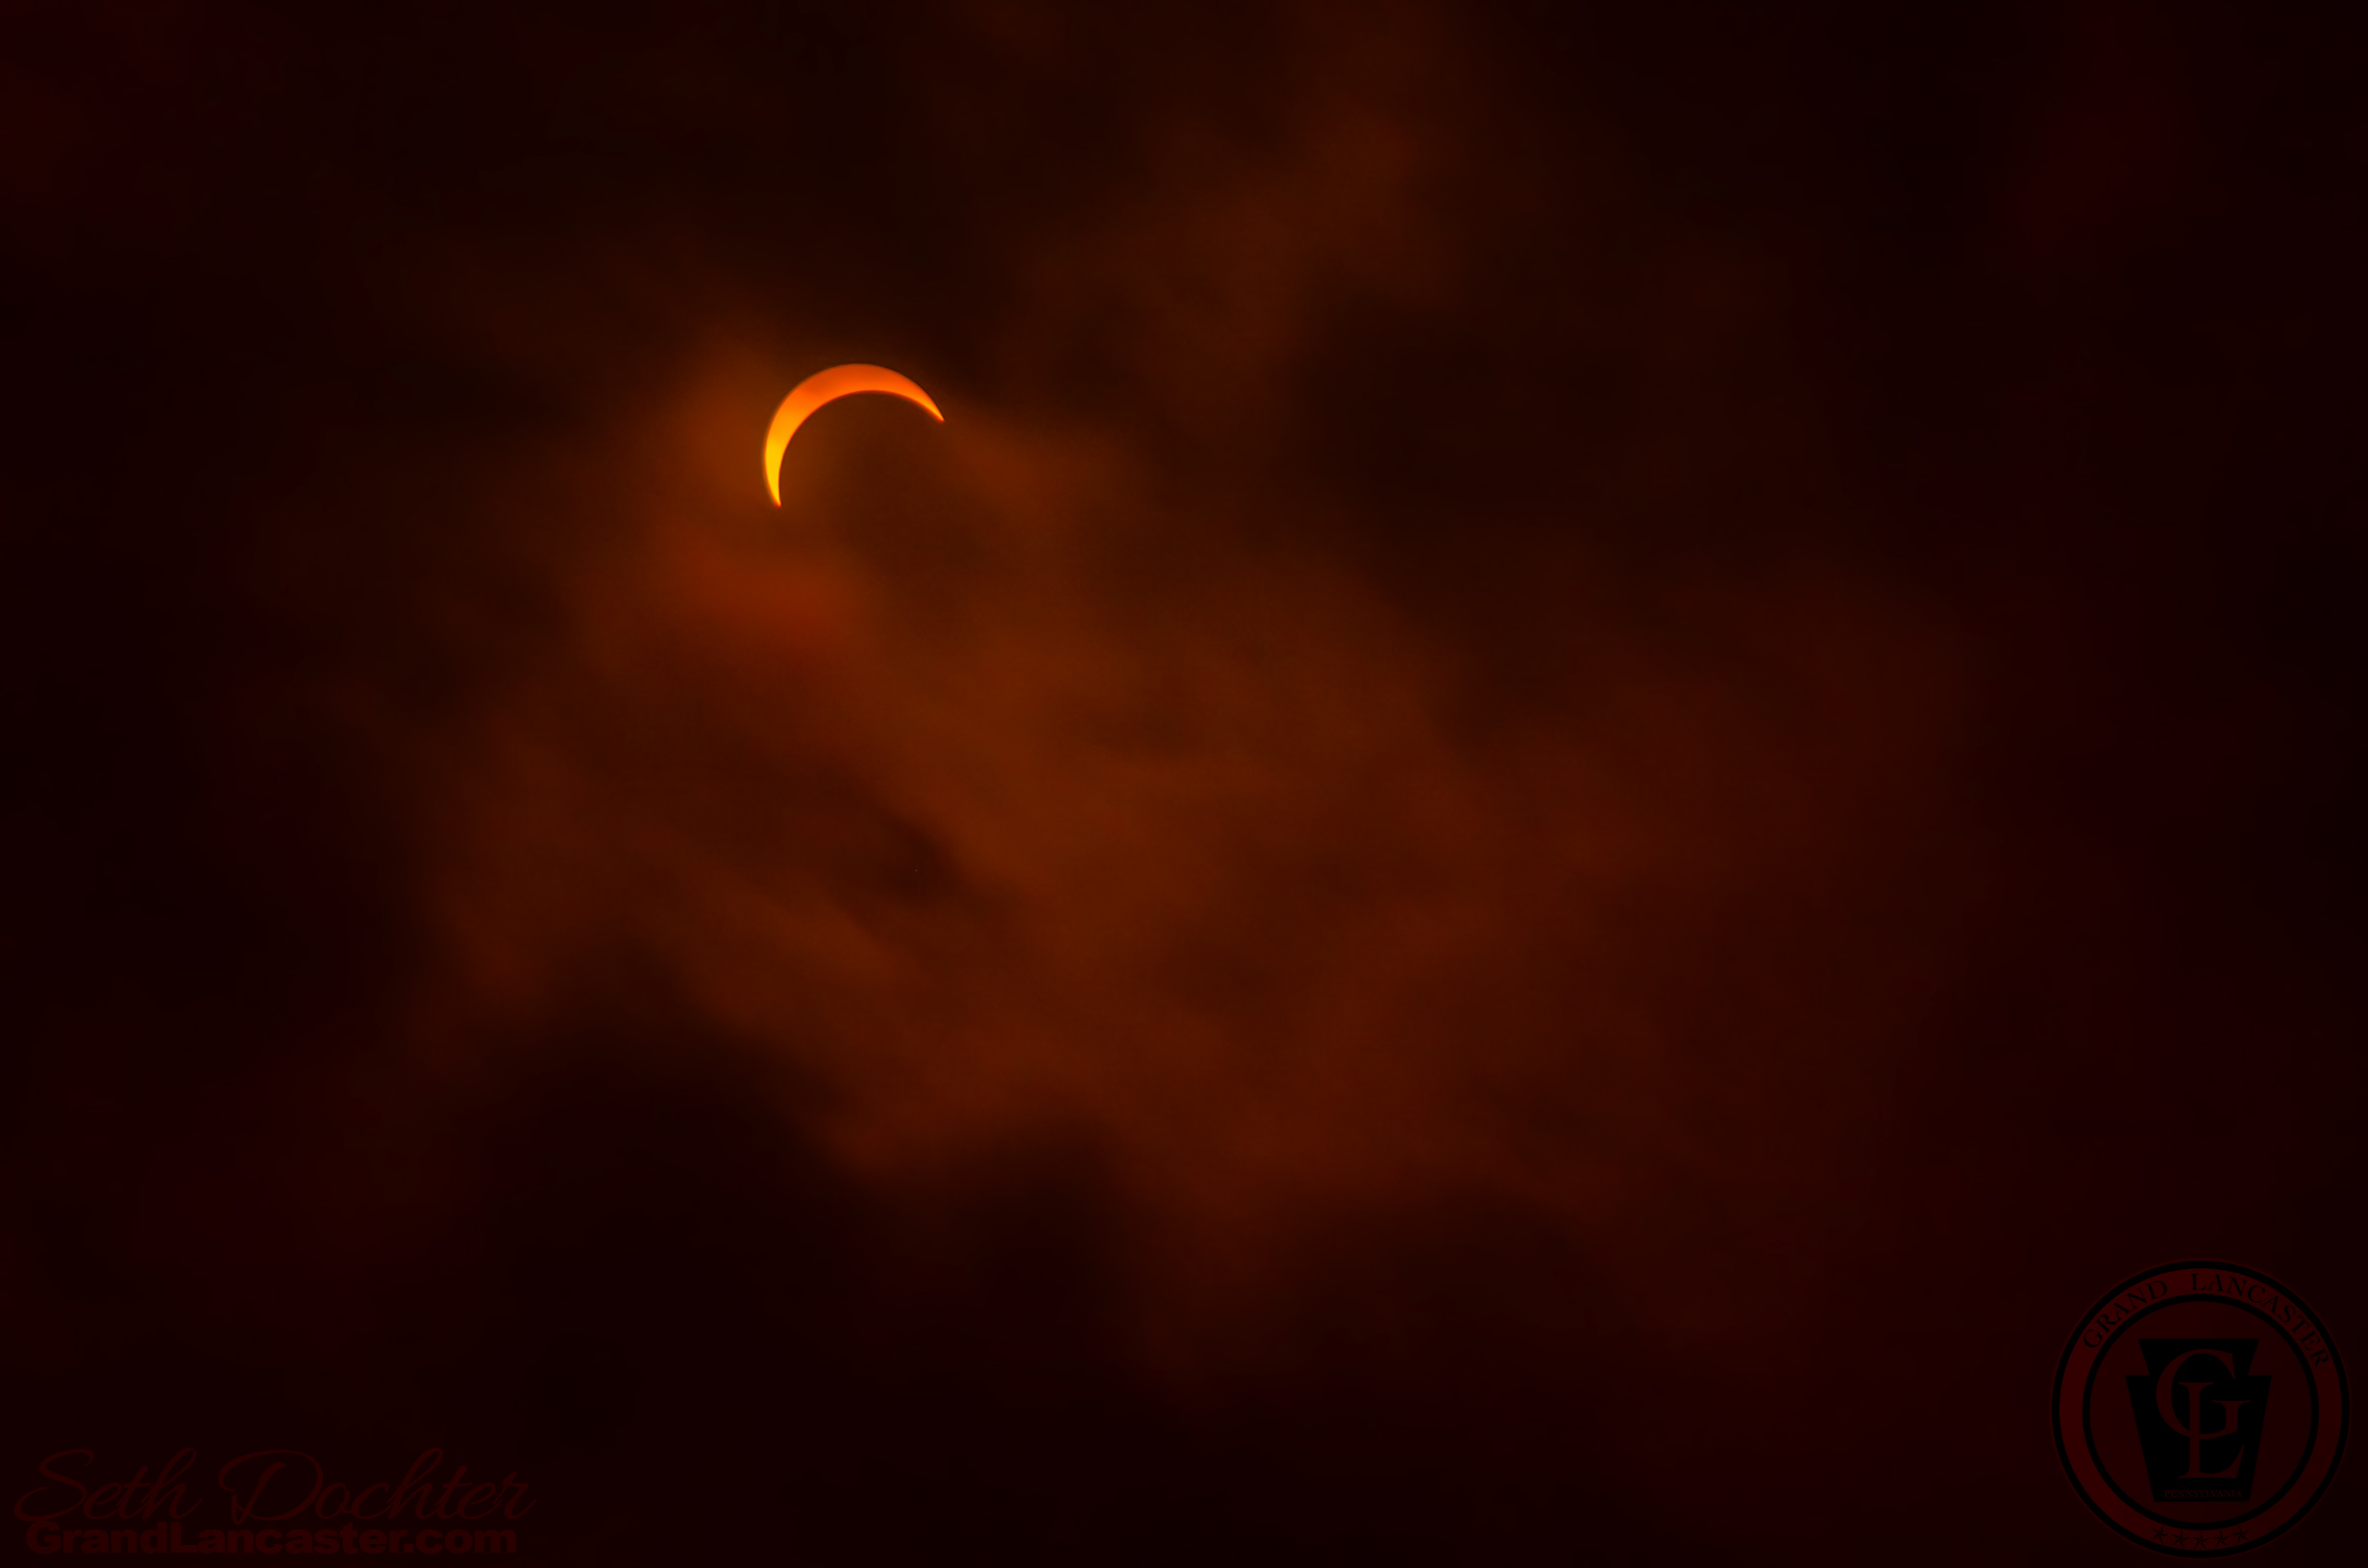 Wisps of clouds passing in front of the eclipse at it's peak in northern West Virginia 8.21.17